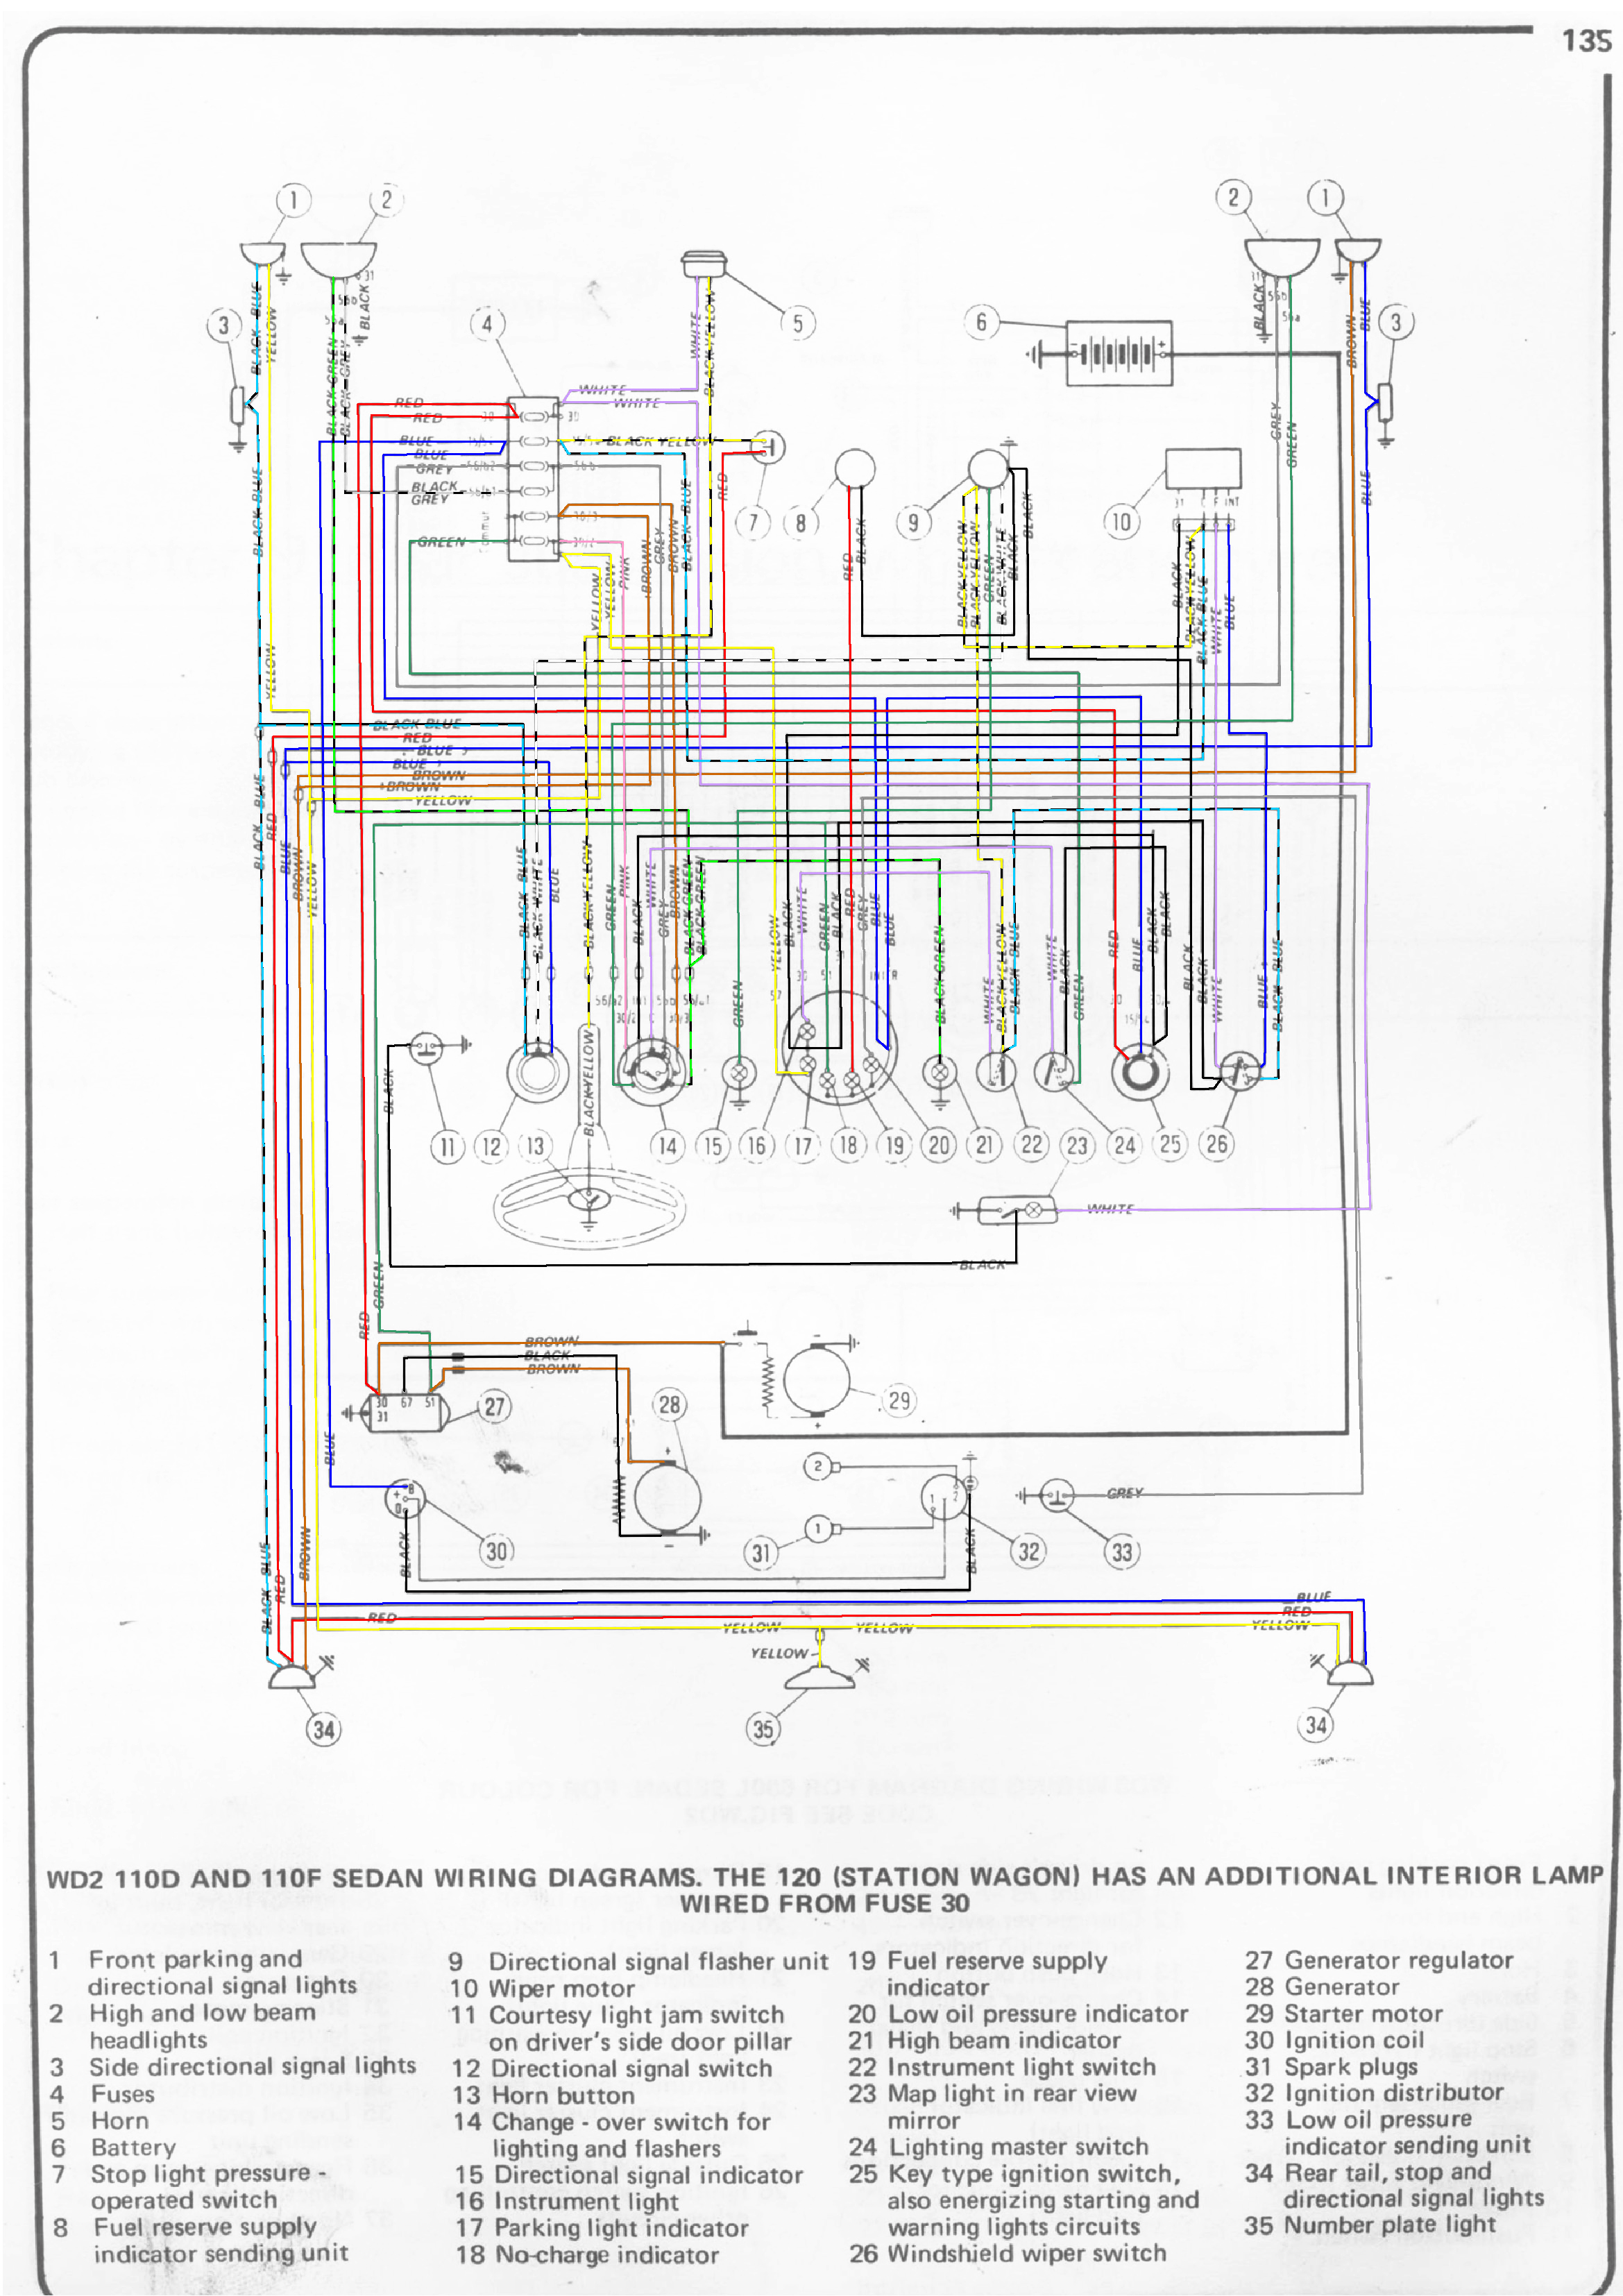 Wiring Diagram For Fiat | Control Cables & Wiring Diagram on fiat spider parts diagrams, 1973 fiat 1300 engine wiring, 1974 fiat wiring,